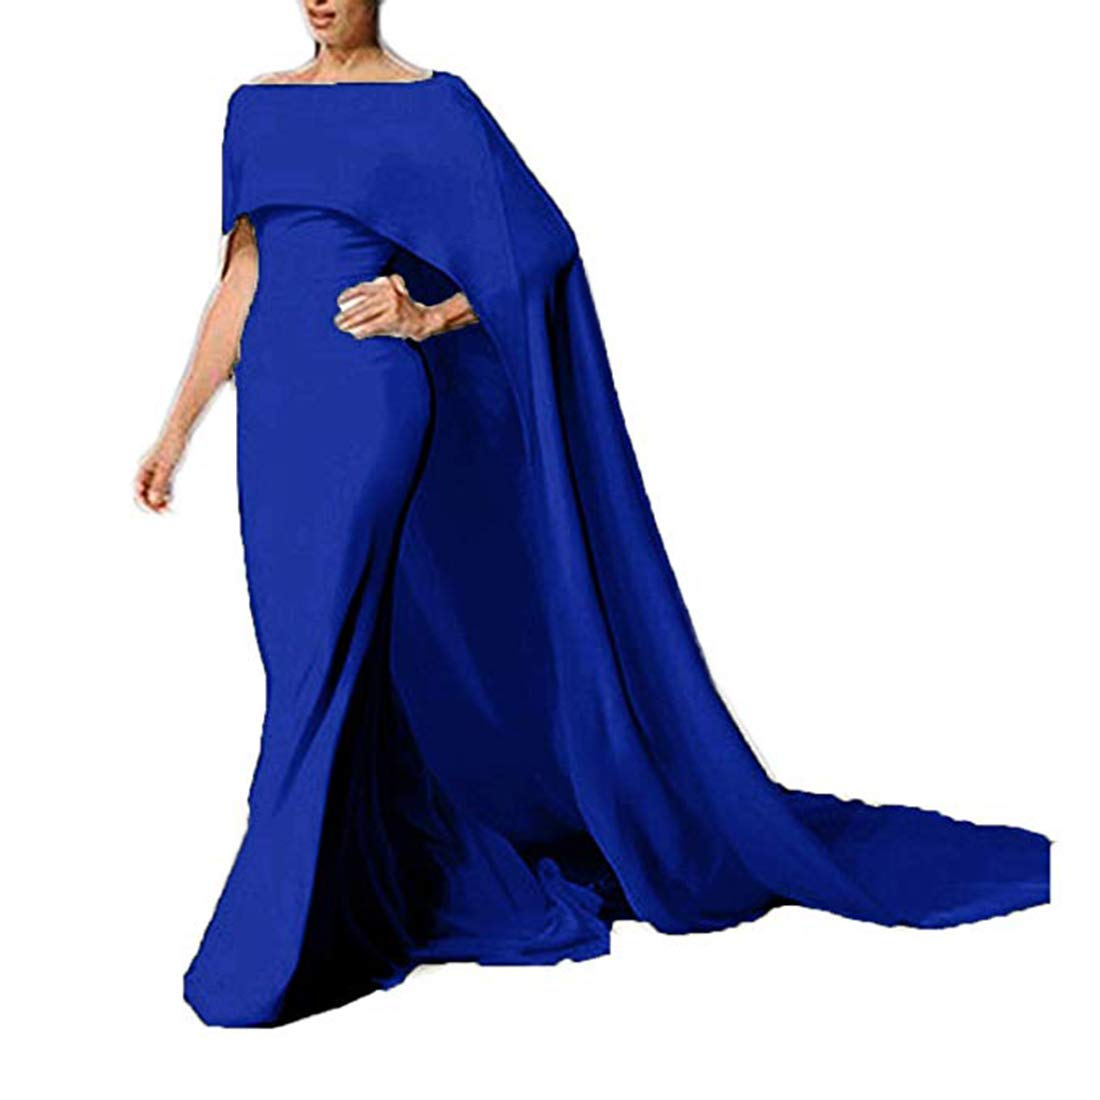 Royal bluee olise bridal Women's Mermaid Prom Evening Dresses 2018 Long Formal Evening Gowns Cape